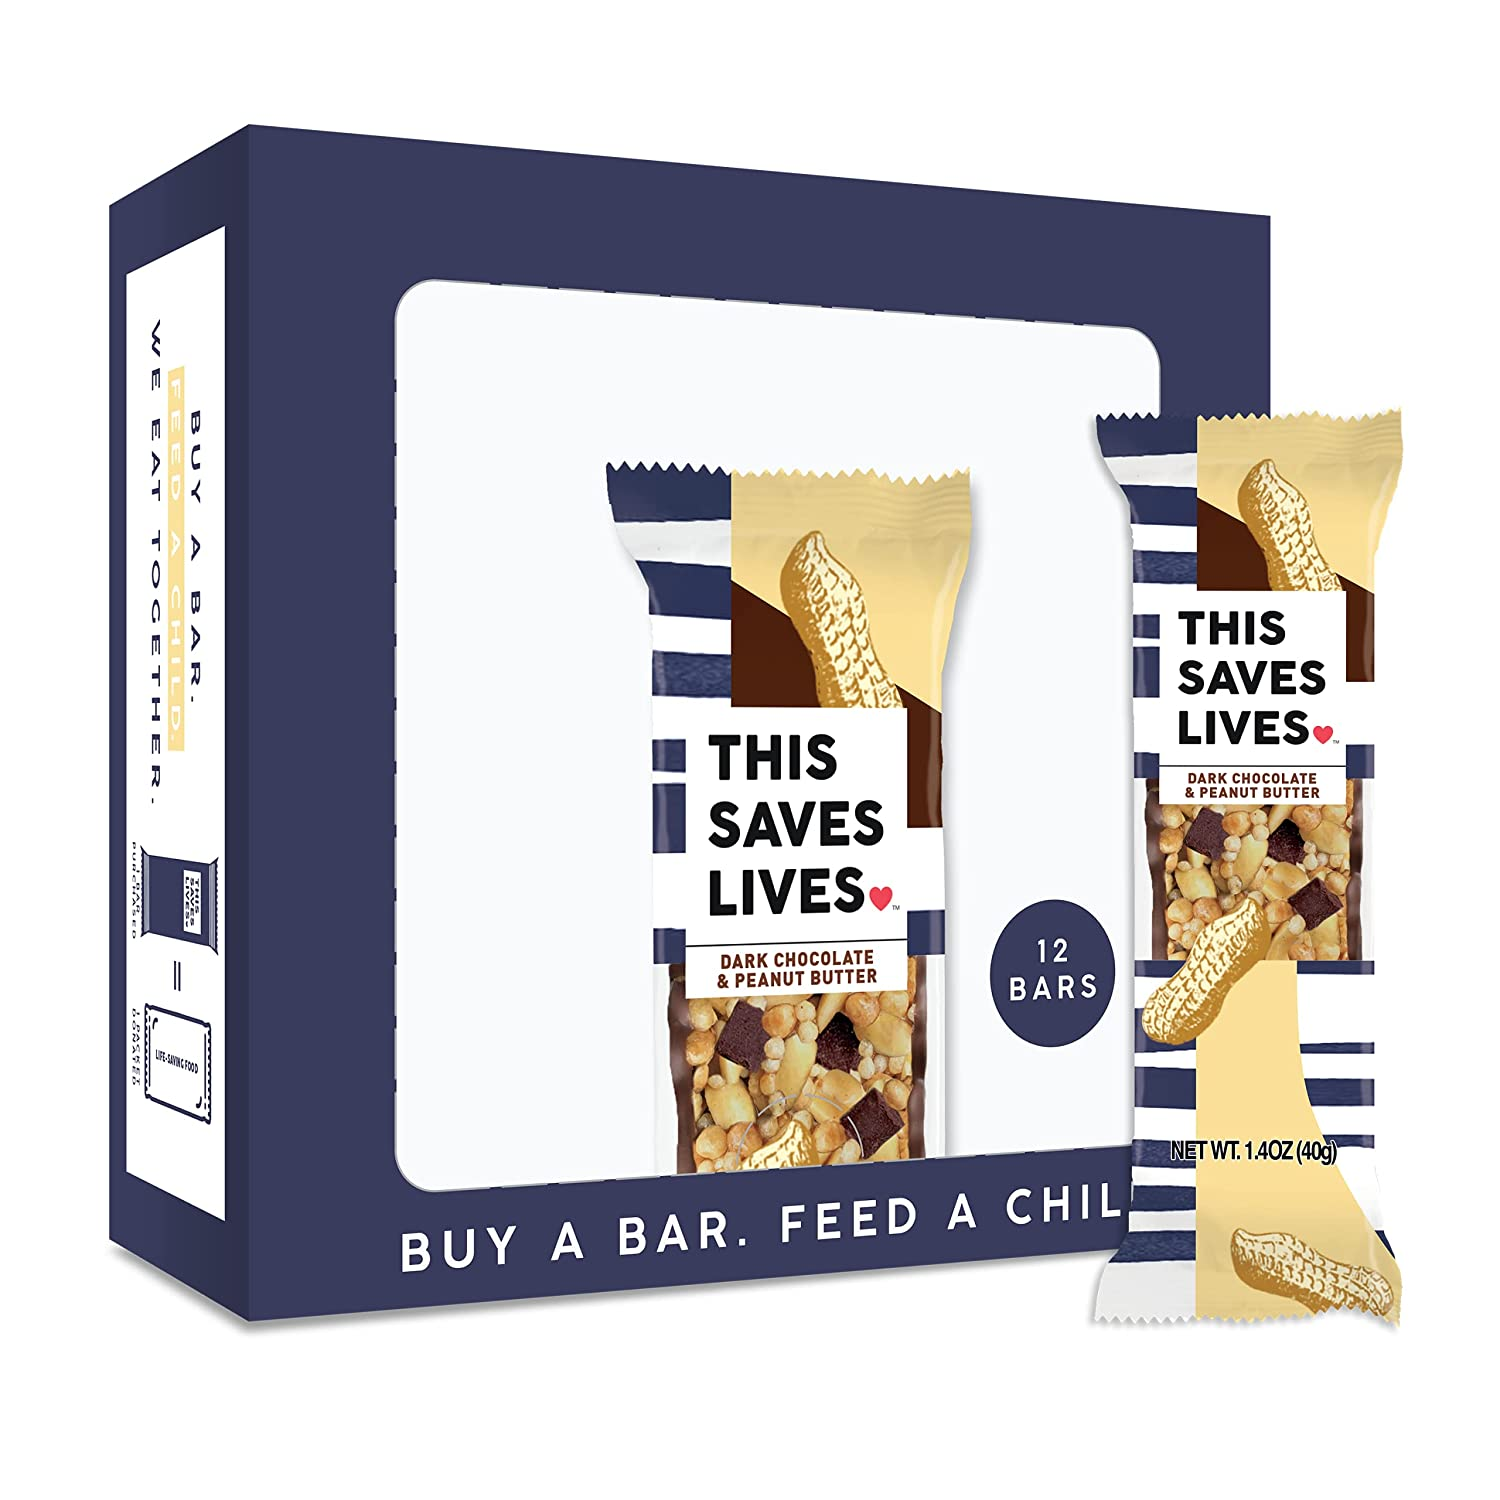 This Saves Lives Chewy Granola Bars, Dark Chocolate Peanut Butter, 12 Pack, Gluten Free Snack Bars, Healthy Snacks for Adults, Healthy Snacks for Kids, Individually Wrapped, Non GMO, Kosher, 1.4oz Bars